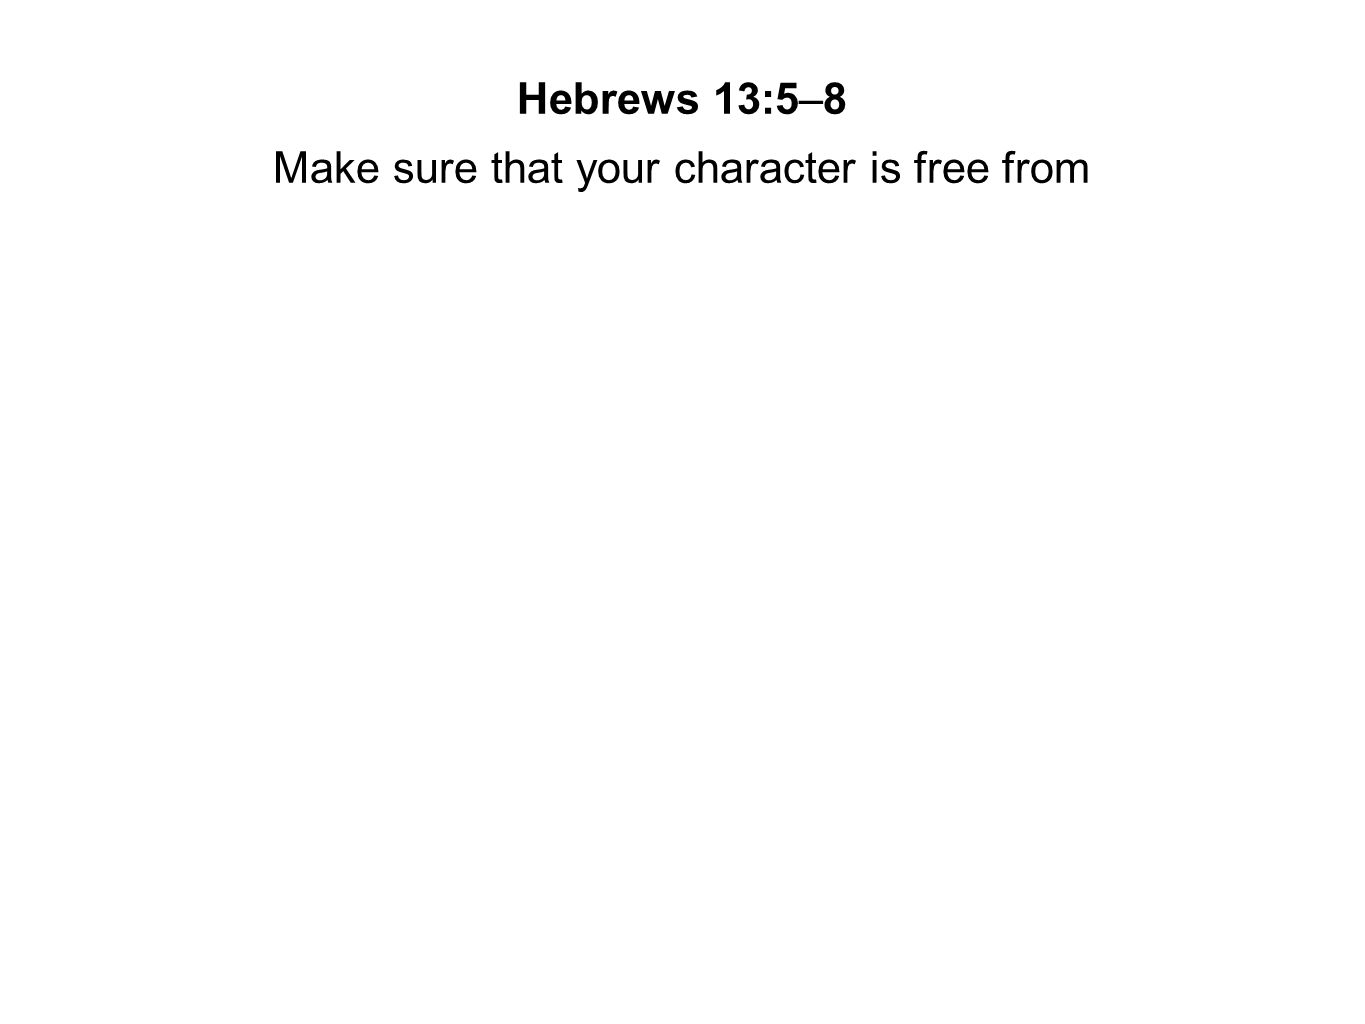 Make sure that your character is free from